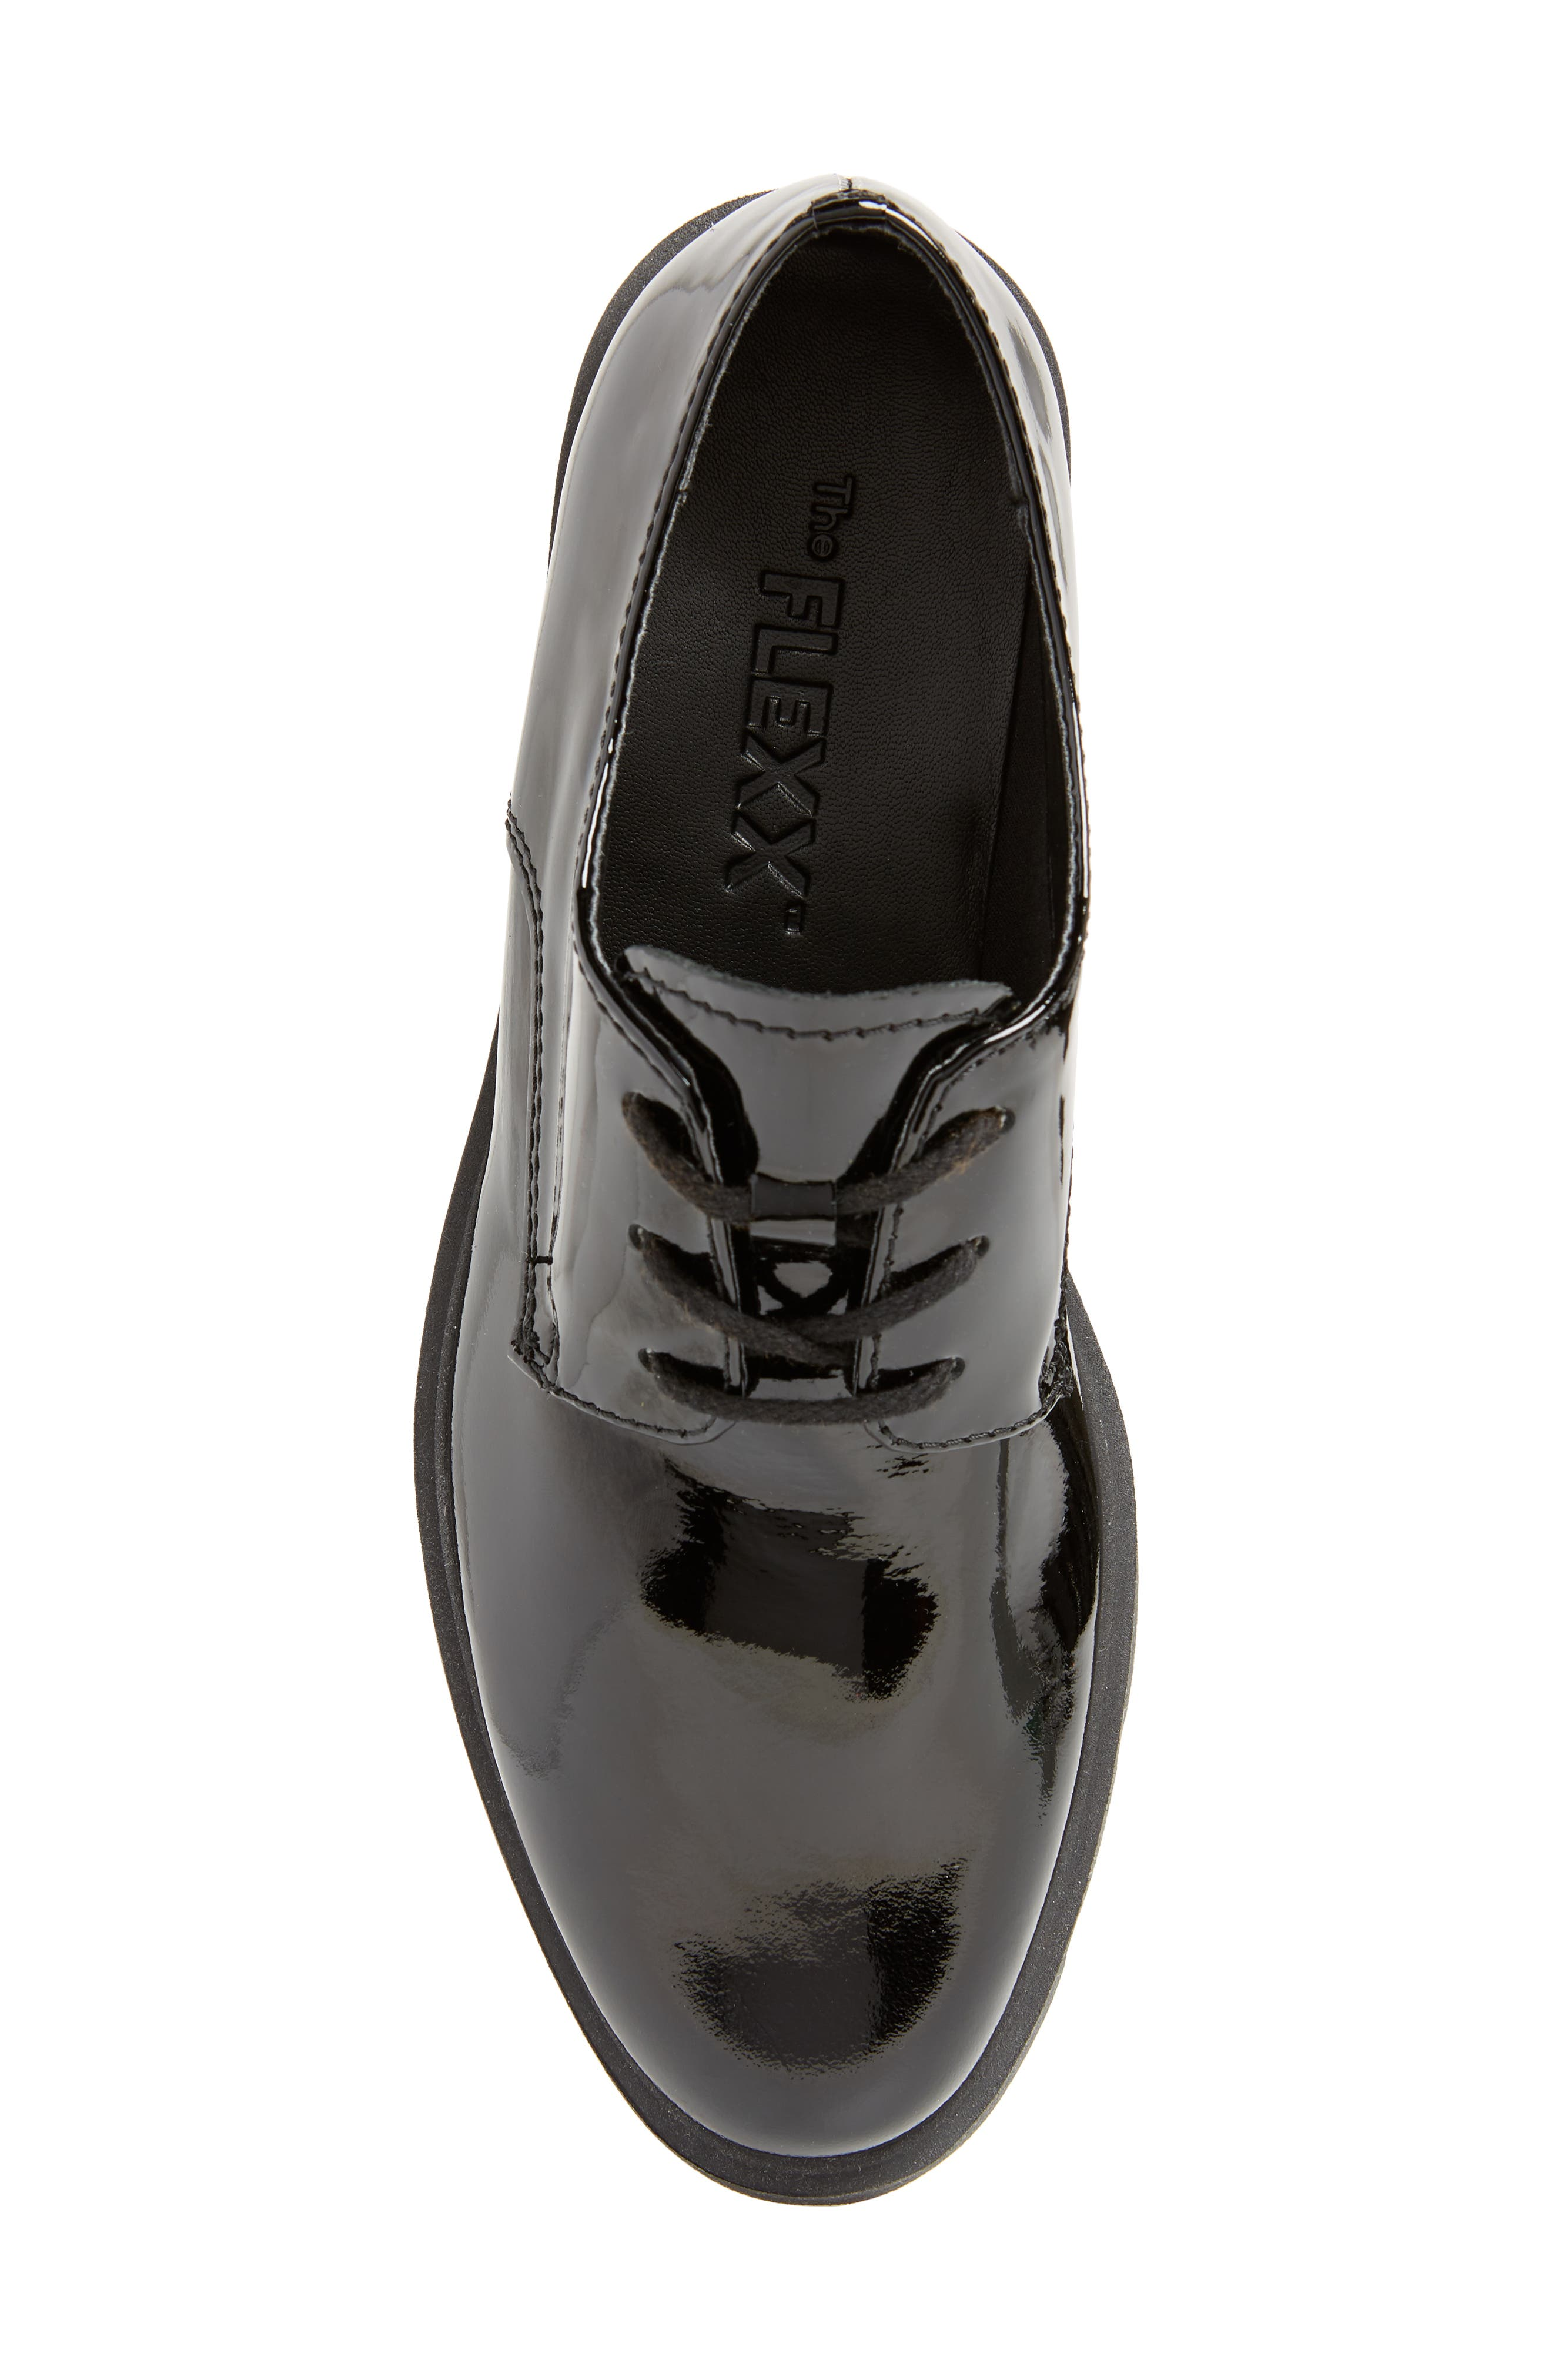 People Mover Derby,                             Alternate thumbnail 5, color,                             BLACK PATENT LEATHER